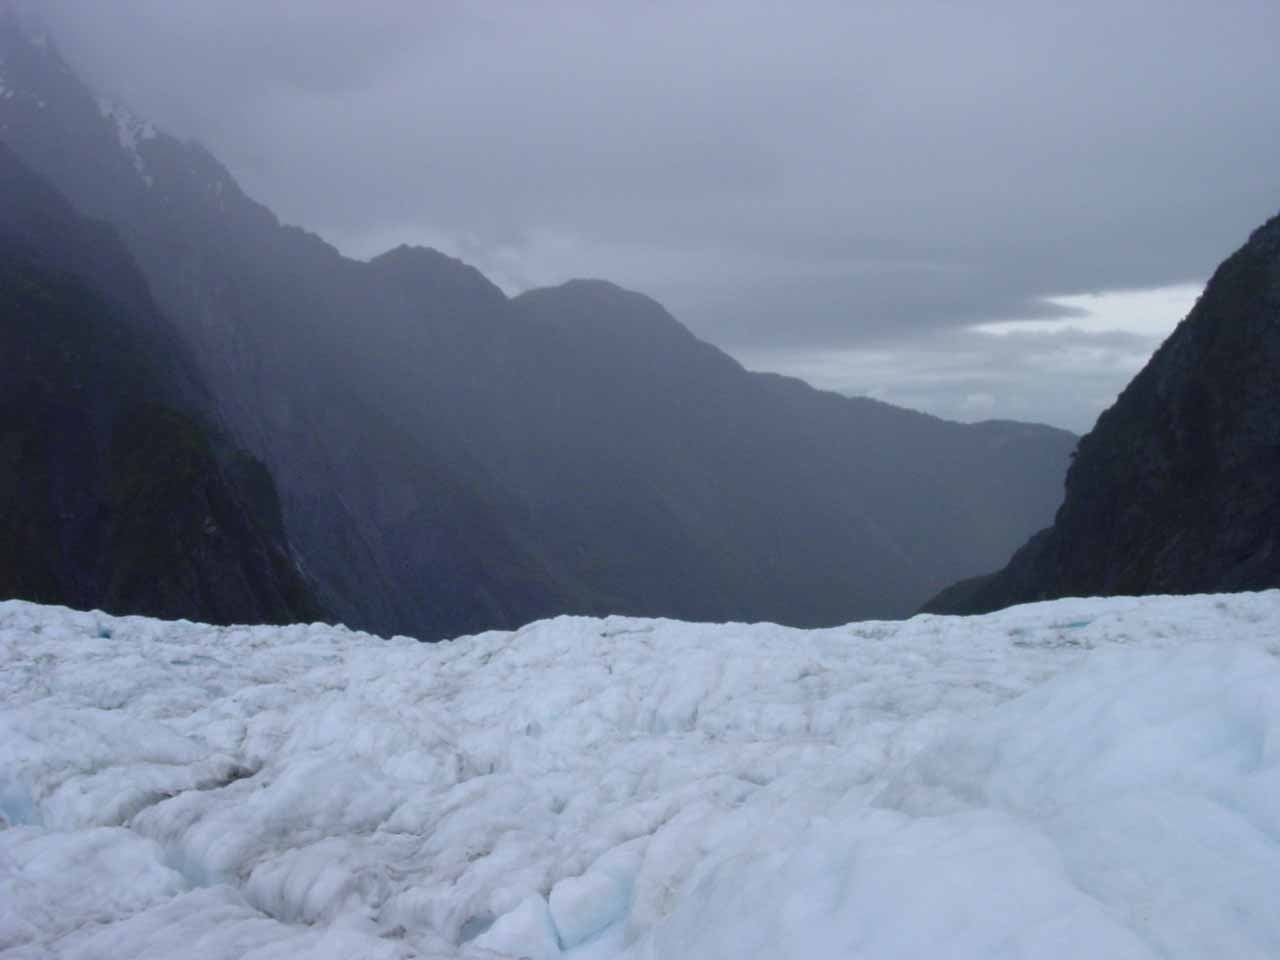 Looking down the Franz Josef Glacier at the weather that we had to contend with on that day